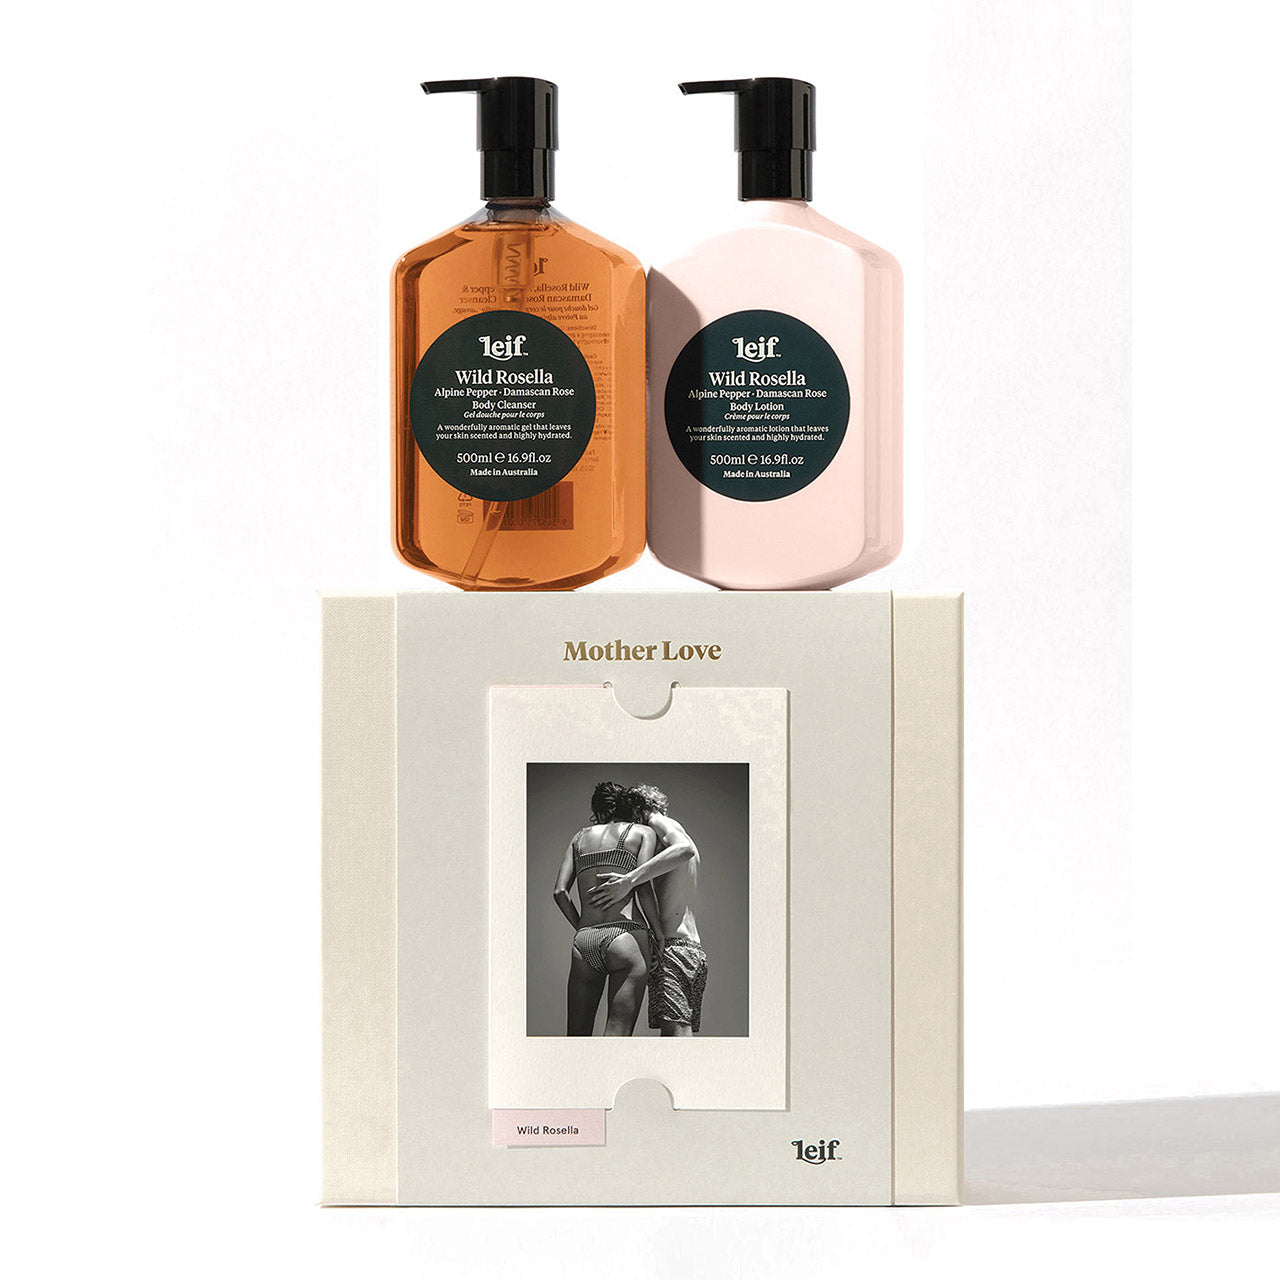 Leif - 'Mother Love' Gift Set of 2 - Body Cleanser & Body Lotion - 500ml - Wild Rosella